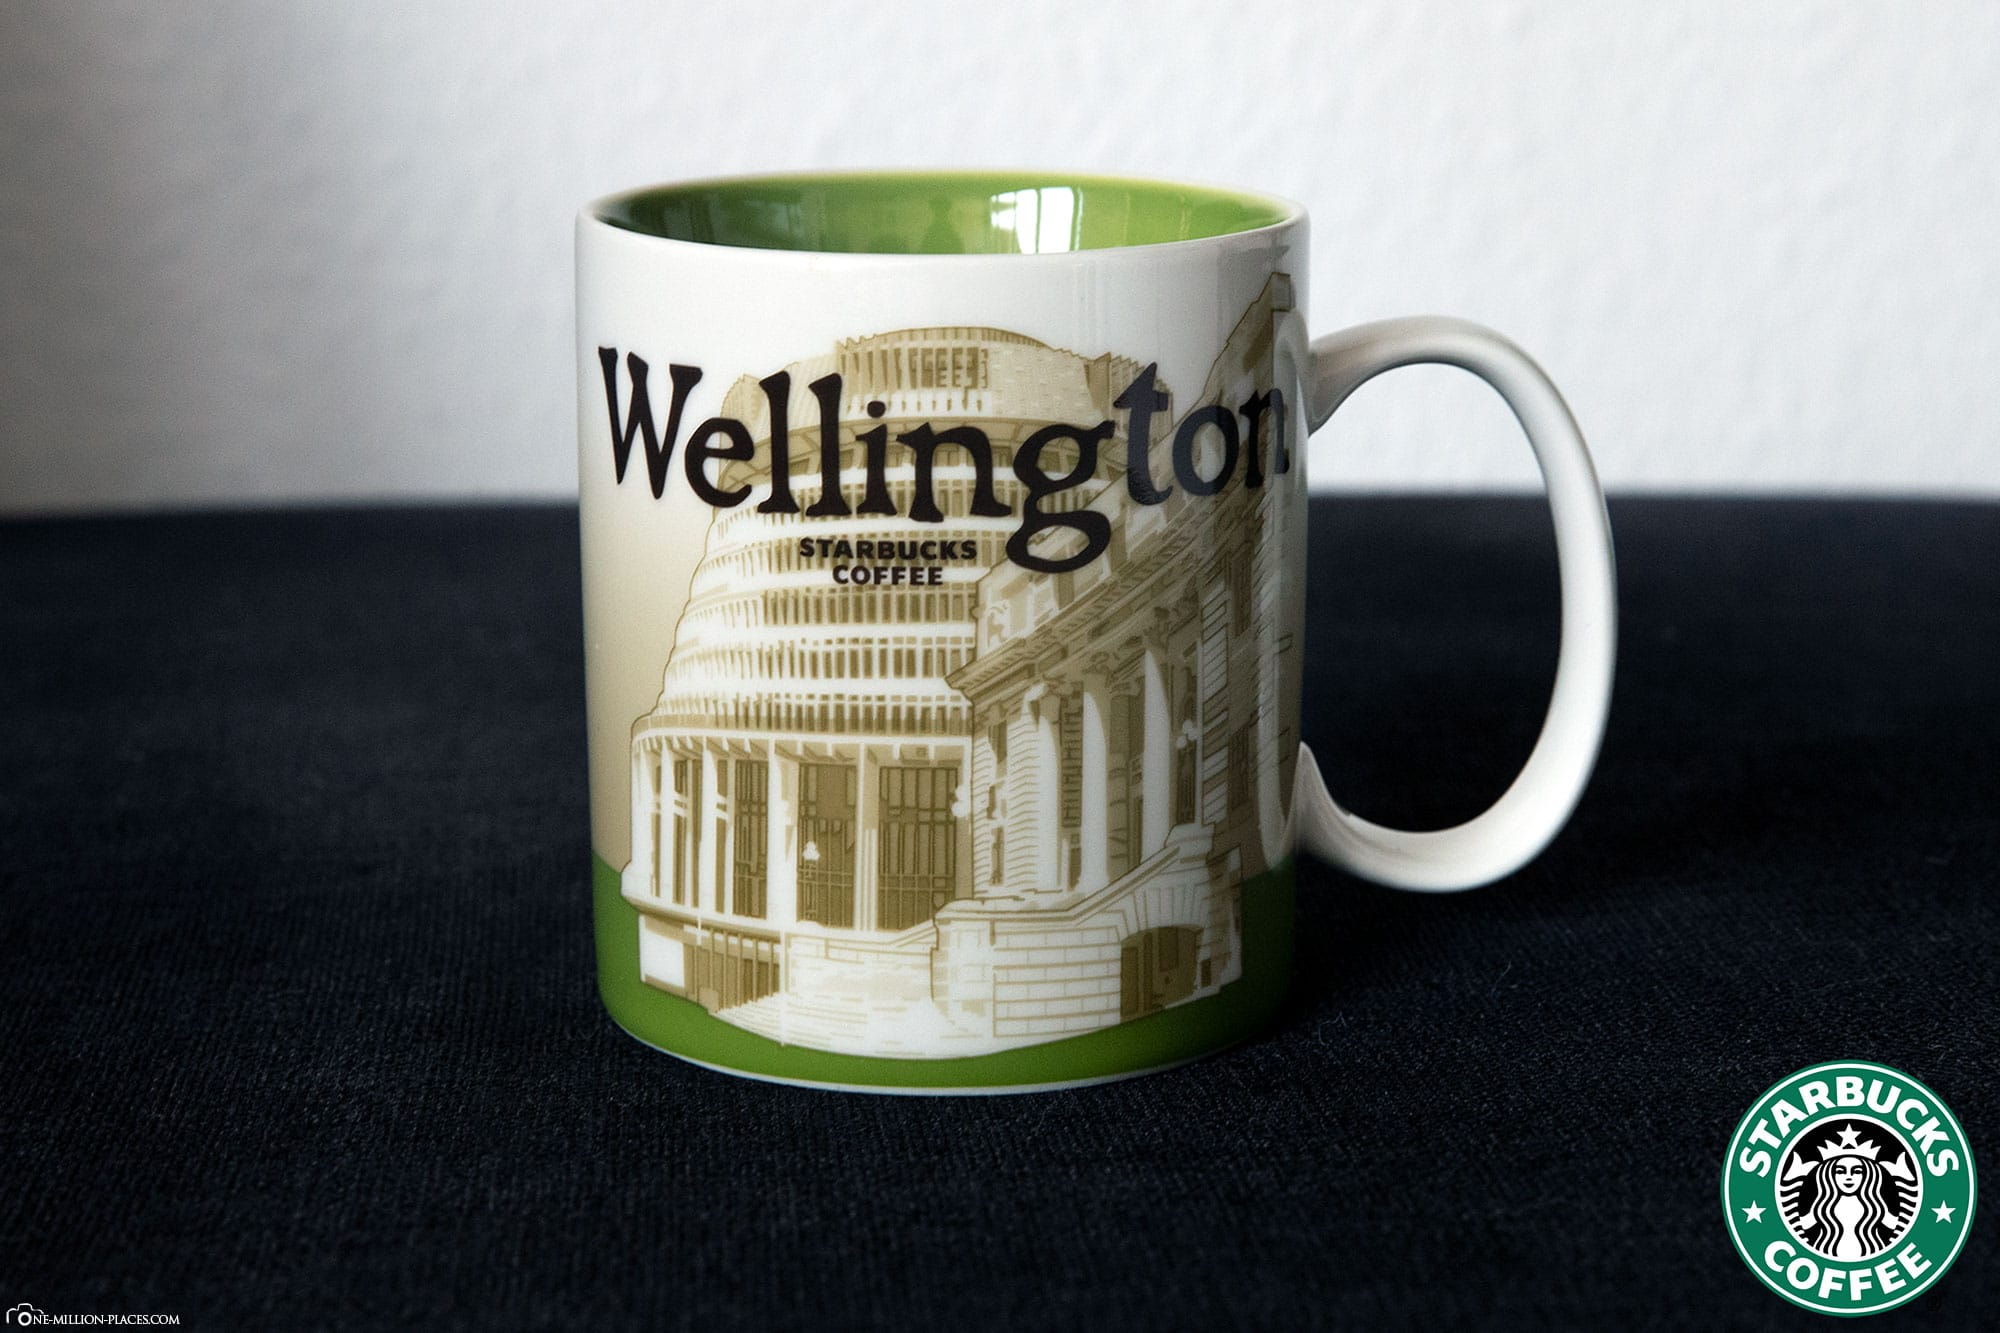 Wellington, Starbucks Cup, Global Icon Series, City Mugs, Collection, New Zealand, Travelreport